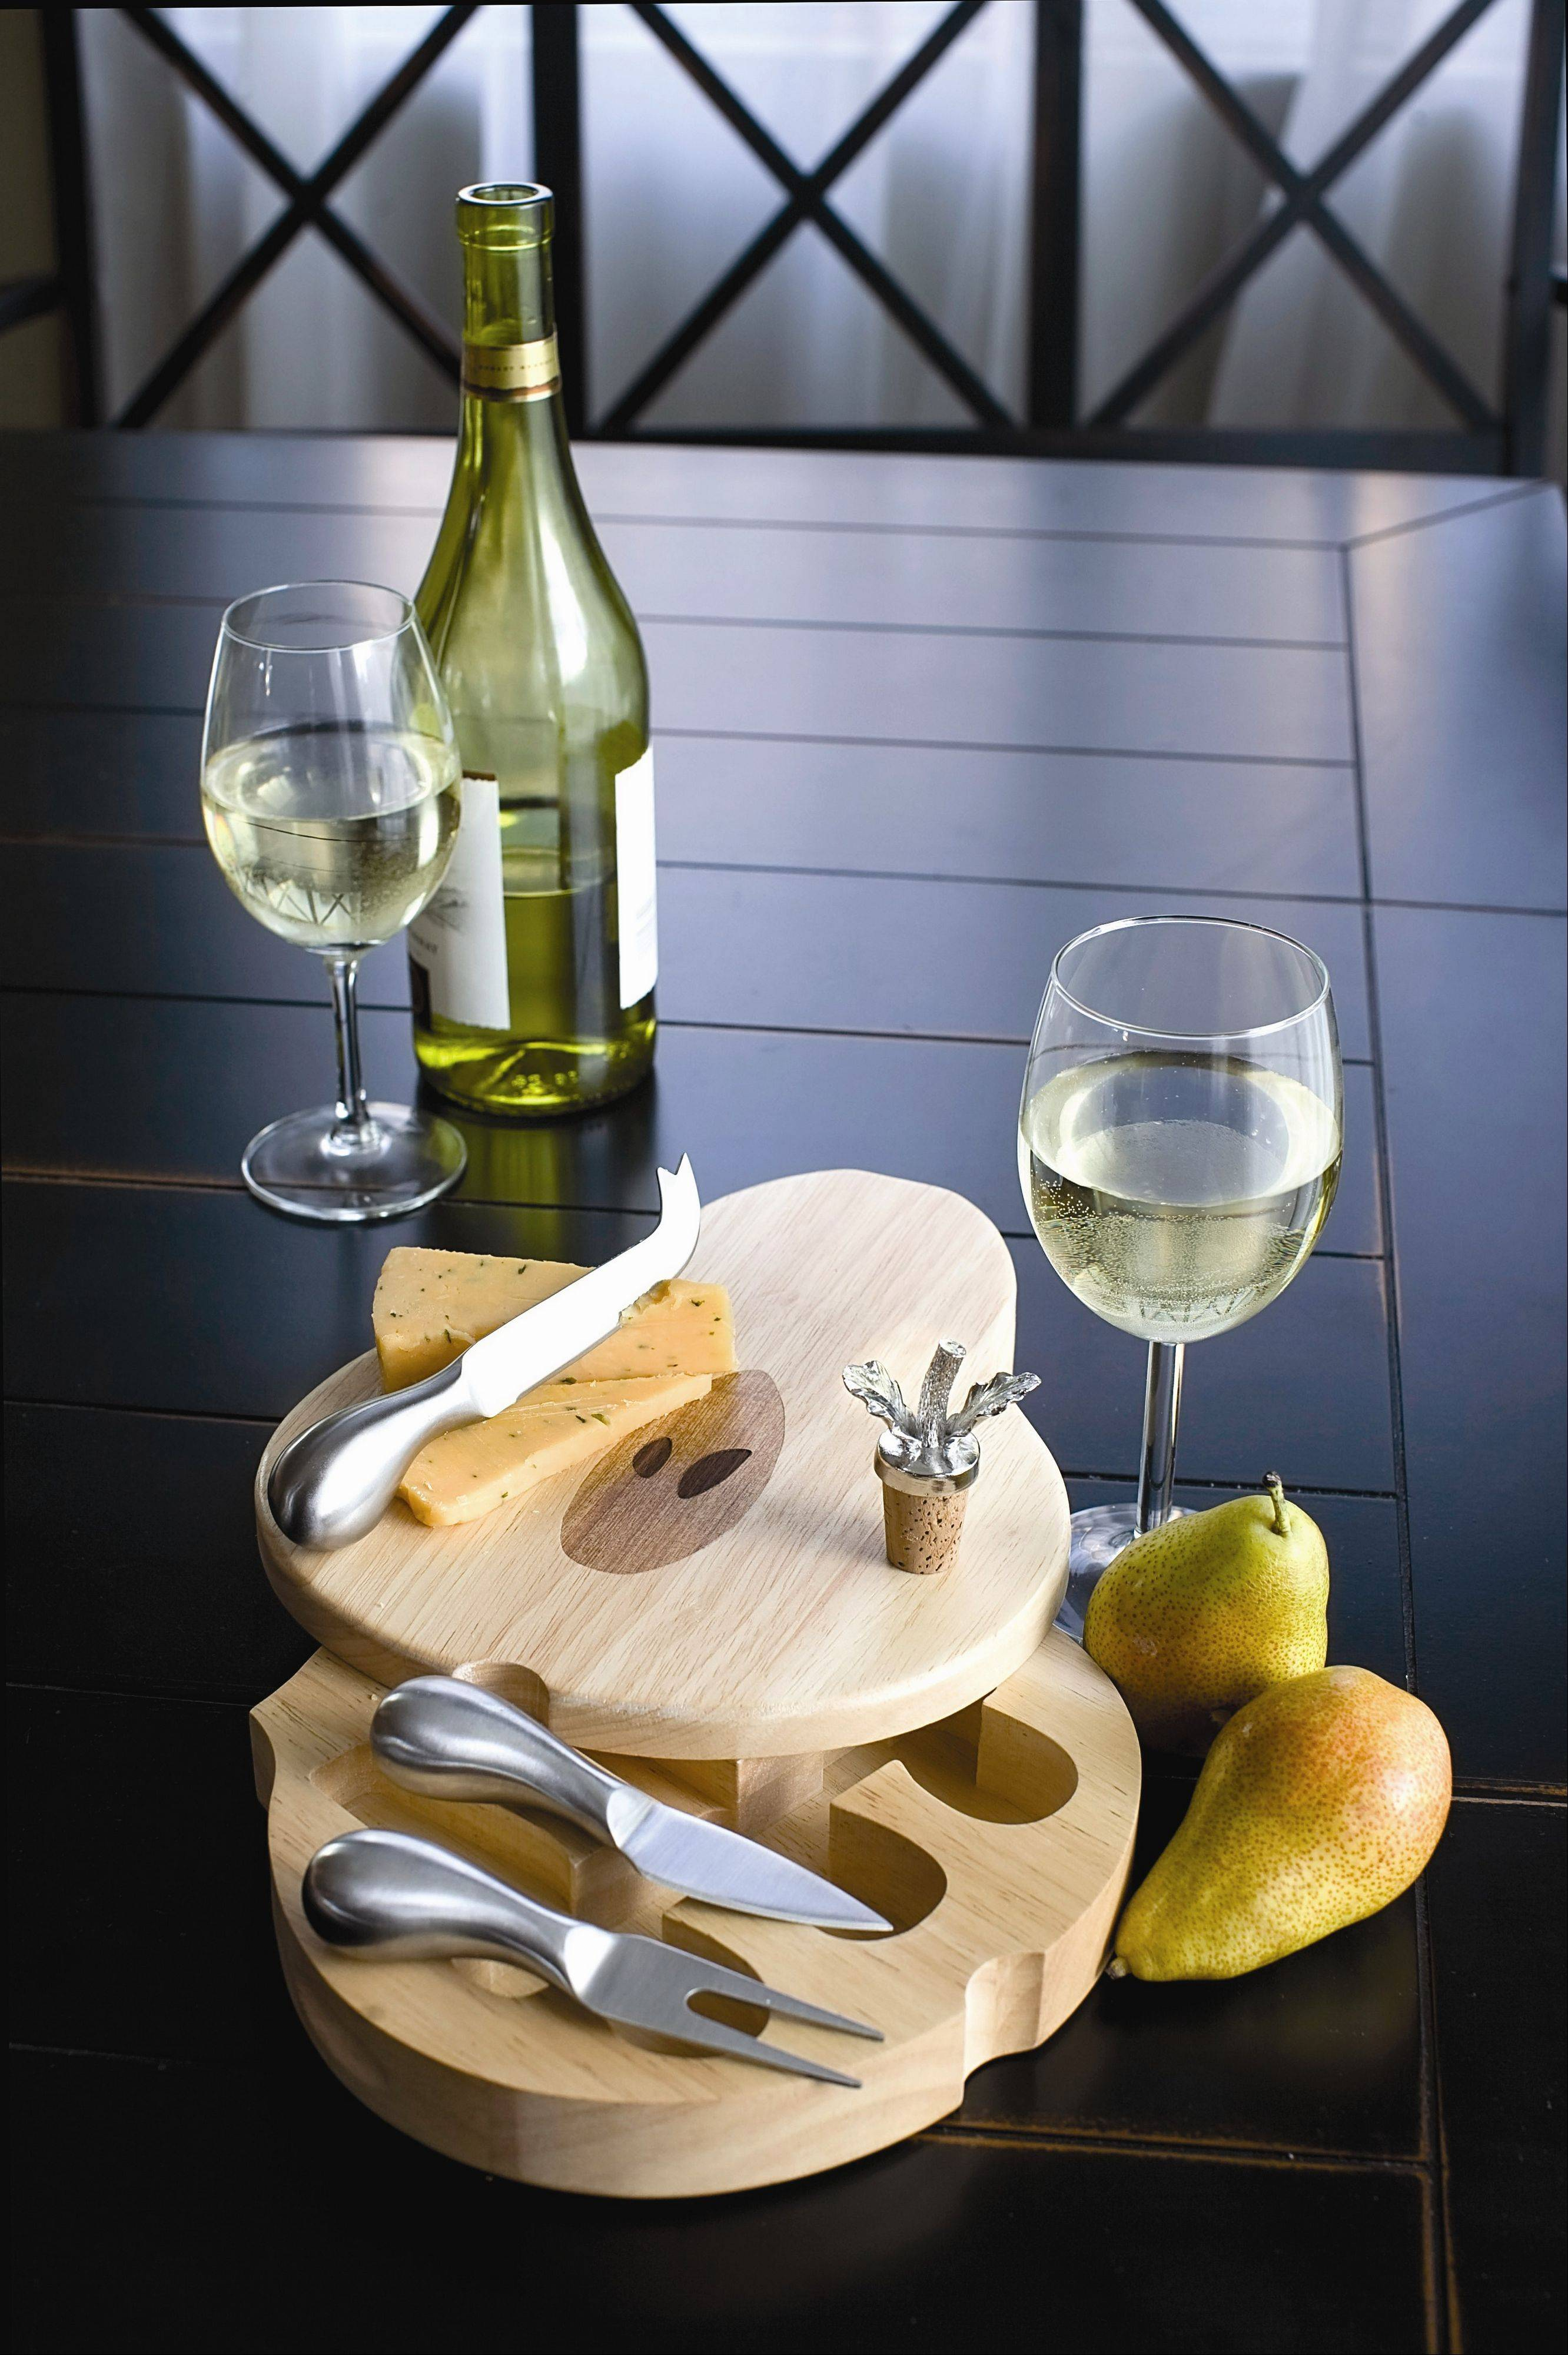 Another hot holiday gift item this year is cheese boards with drawers containing accessories.